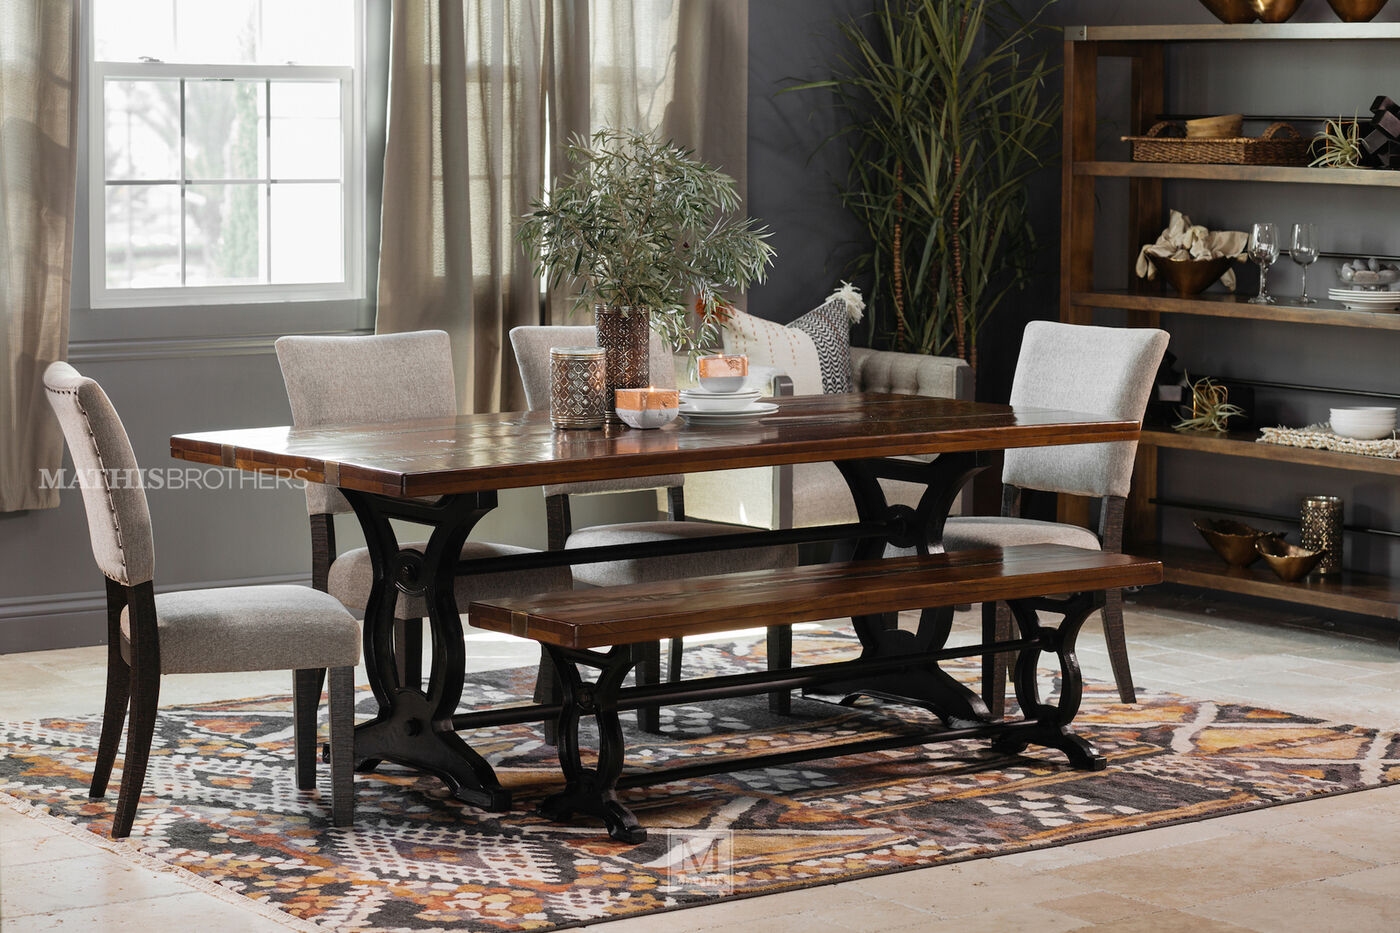 Stunning Mathis Brothers Dining Room Furniture Photos